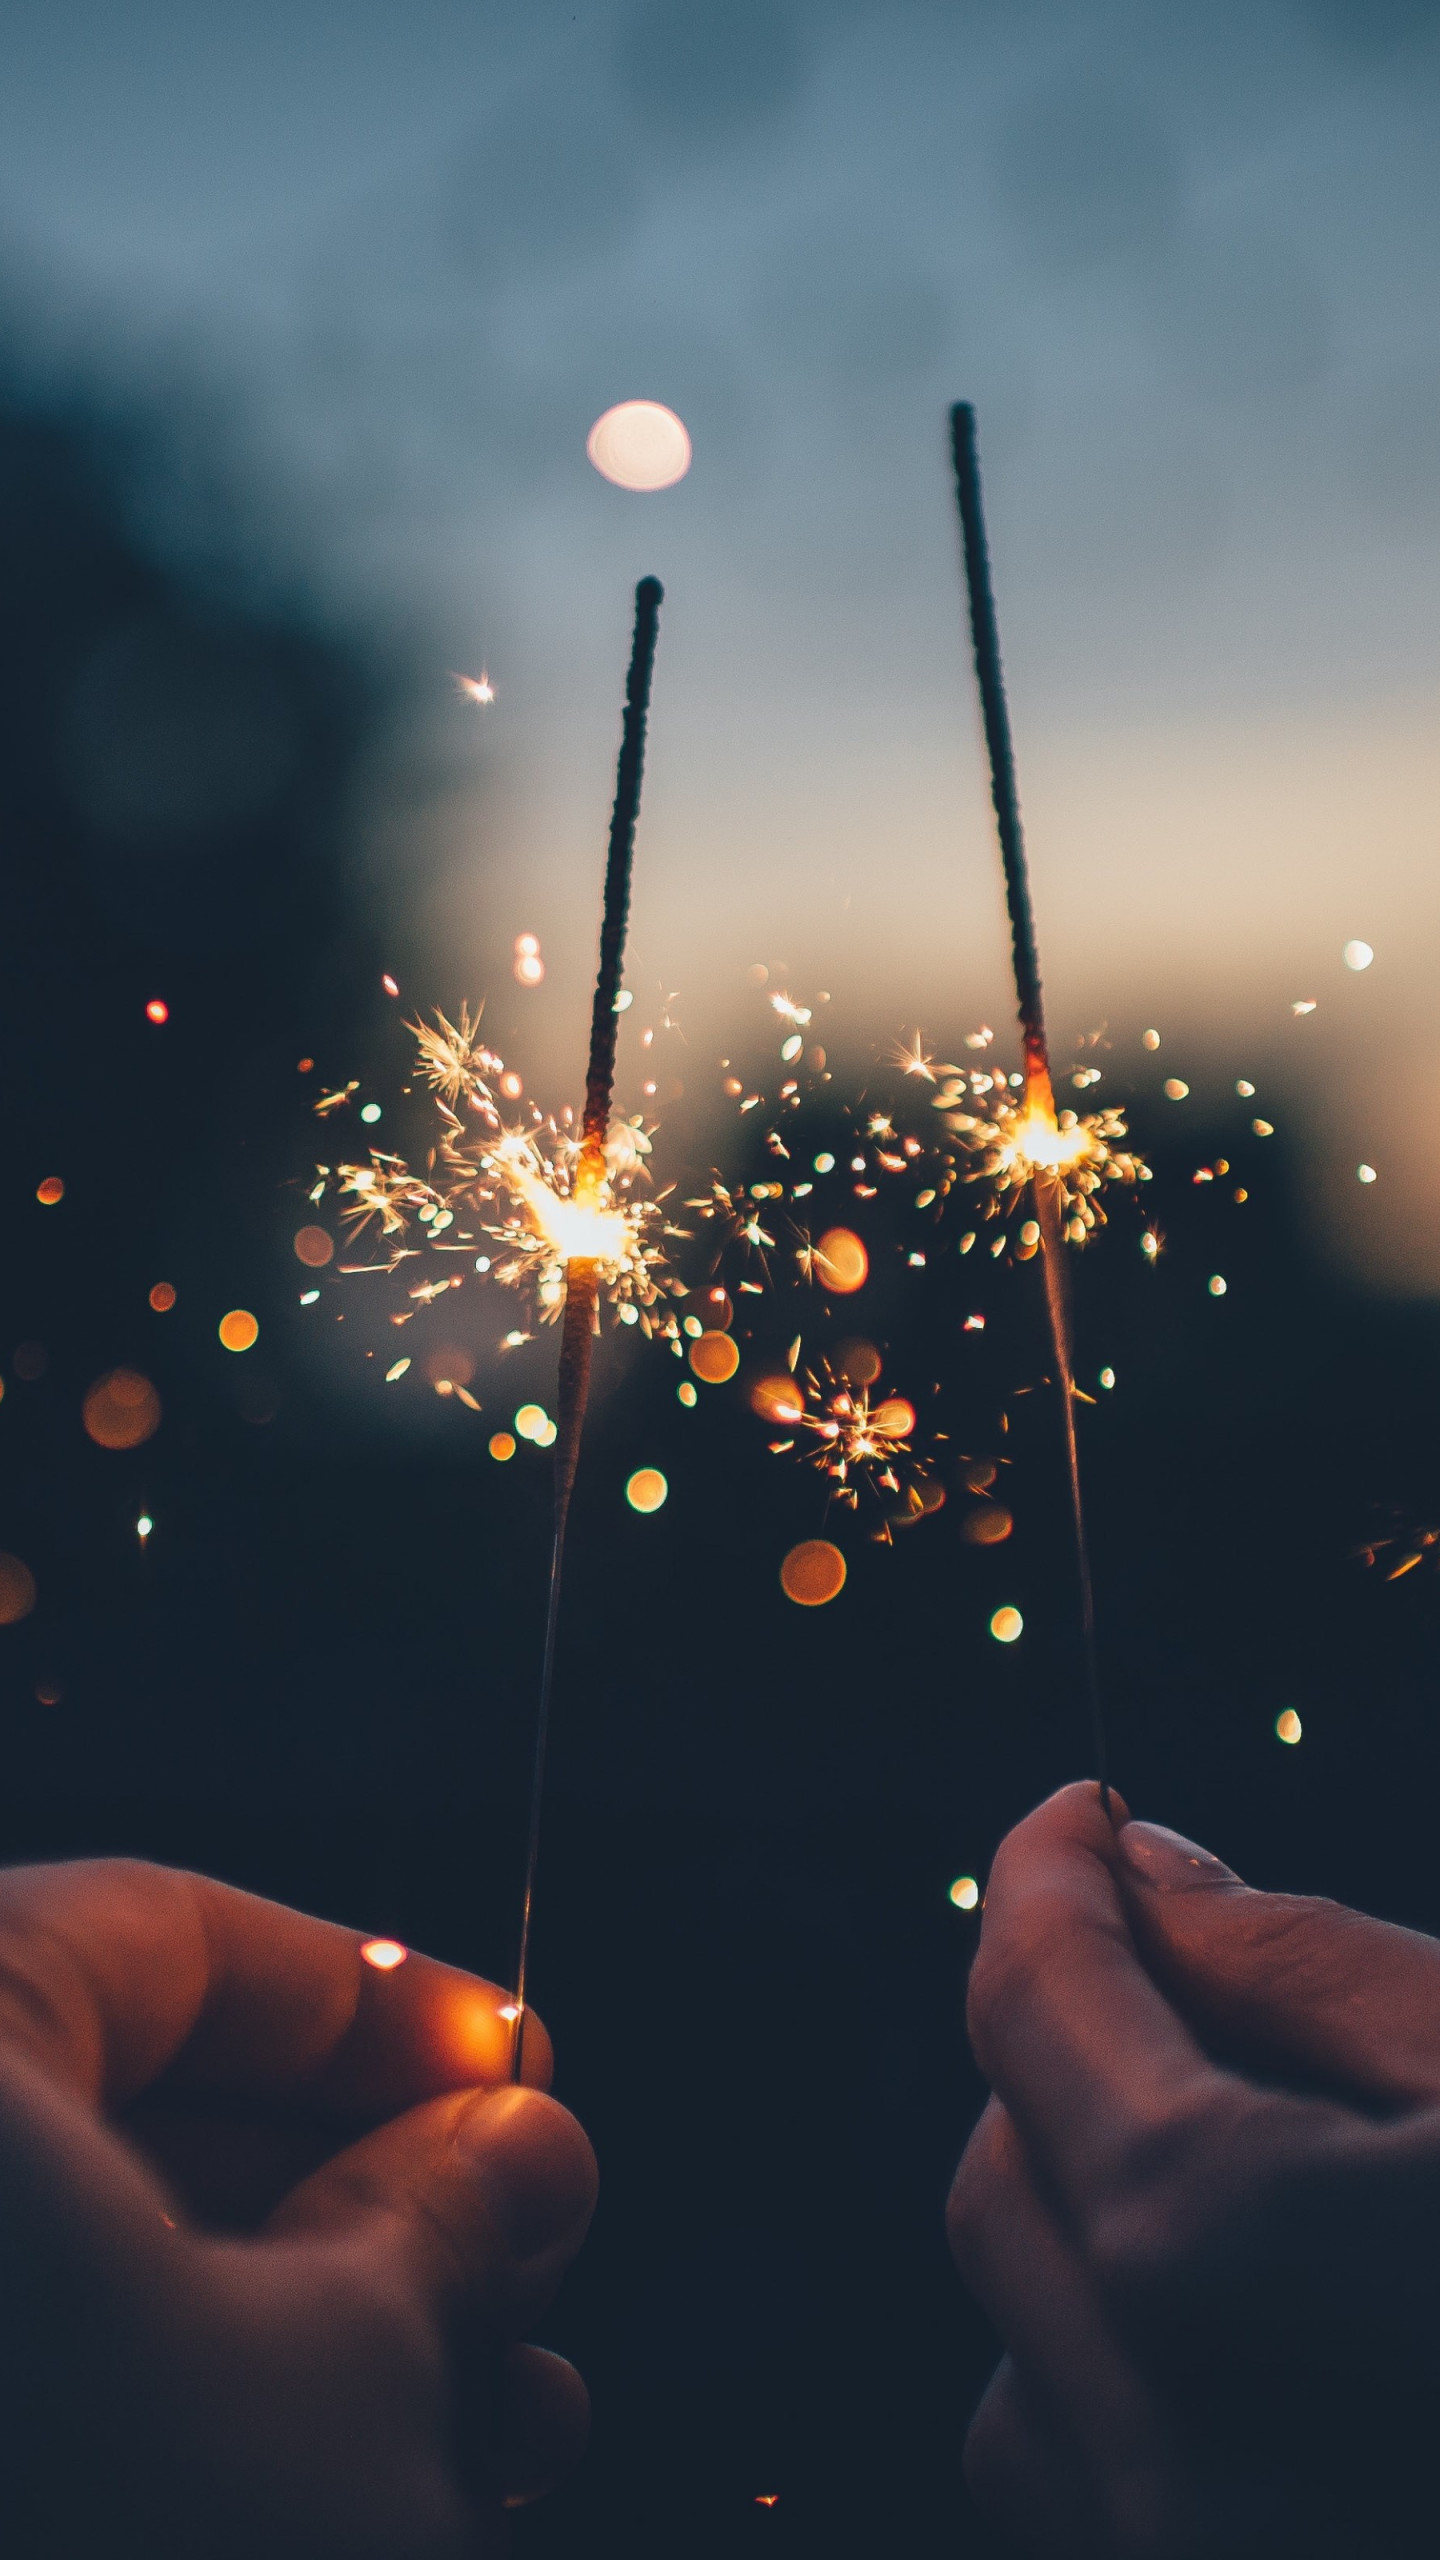 Two fireworks wallpaper 1440x2560